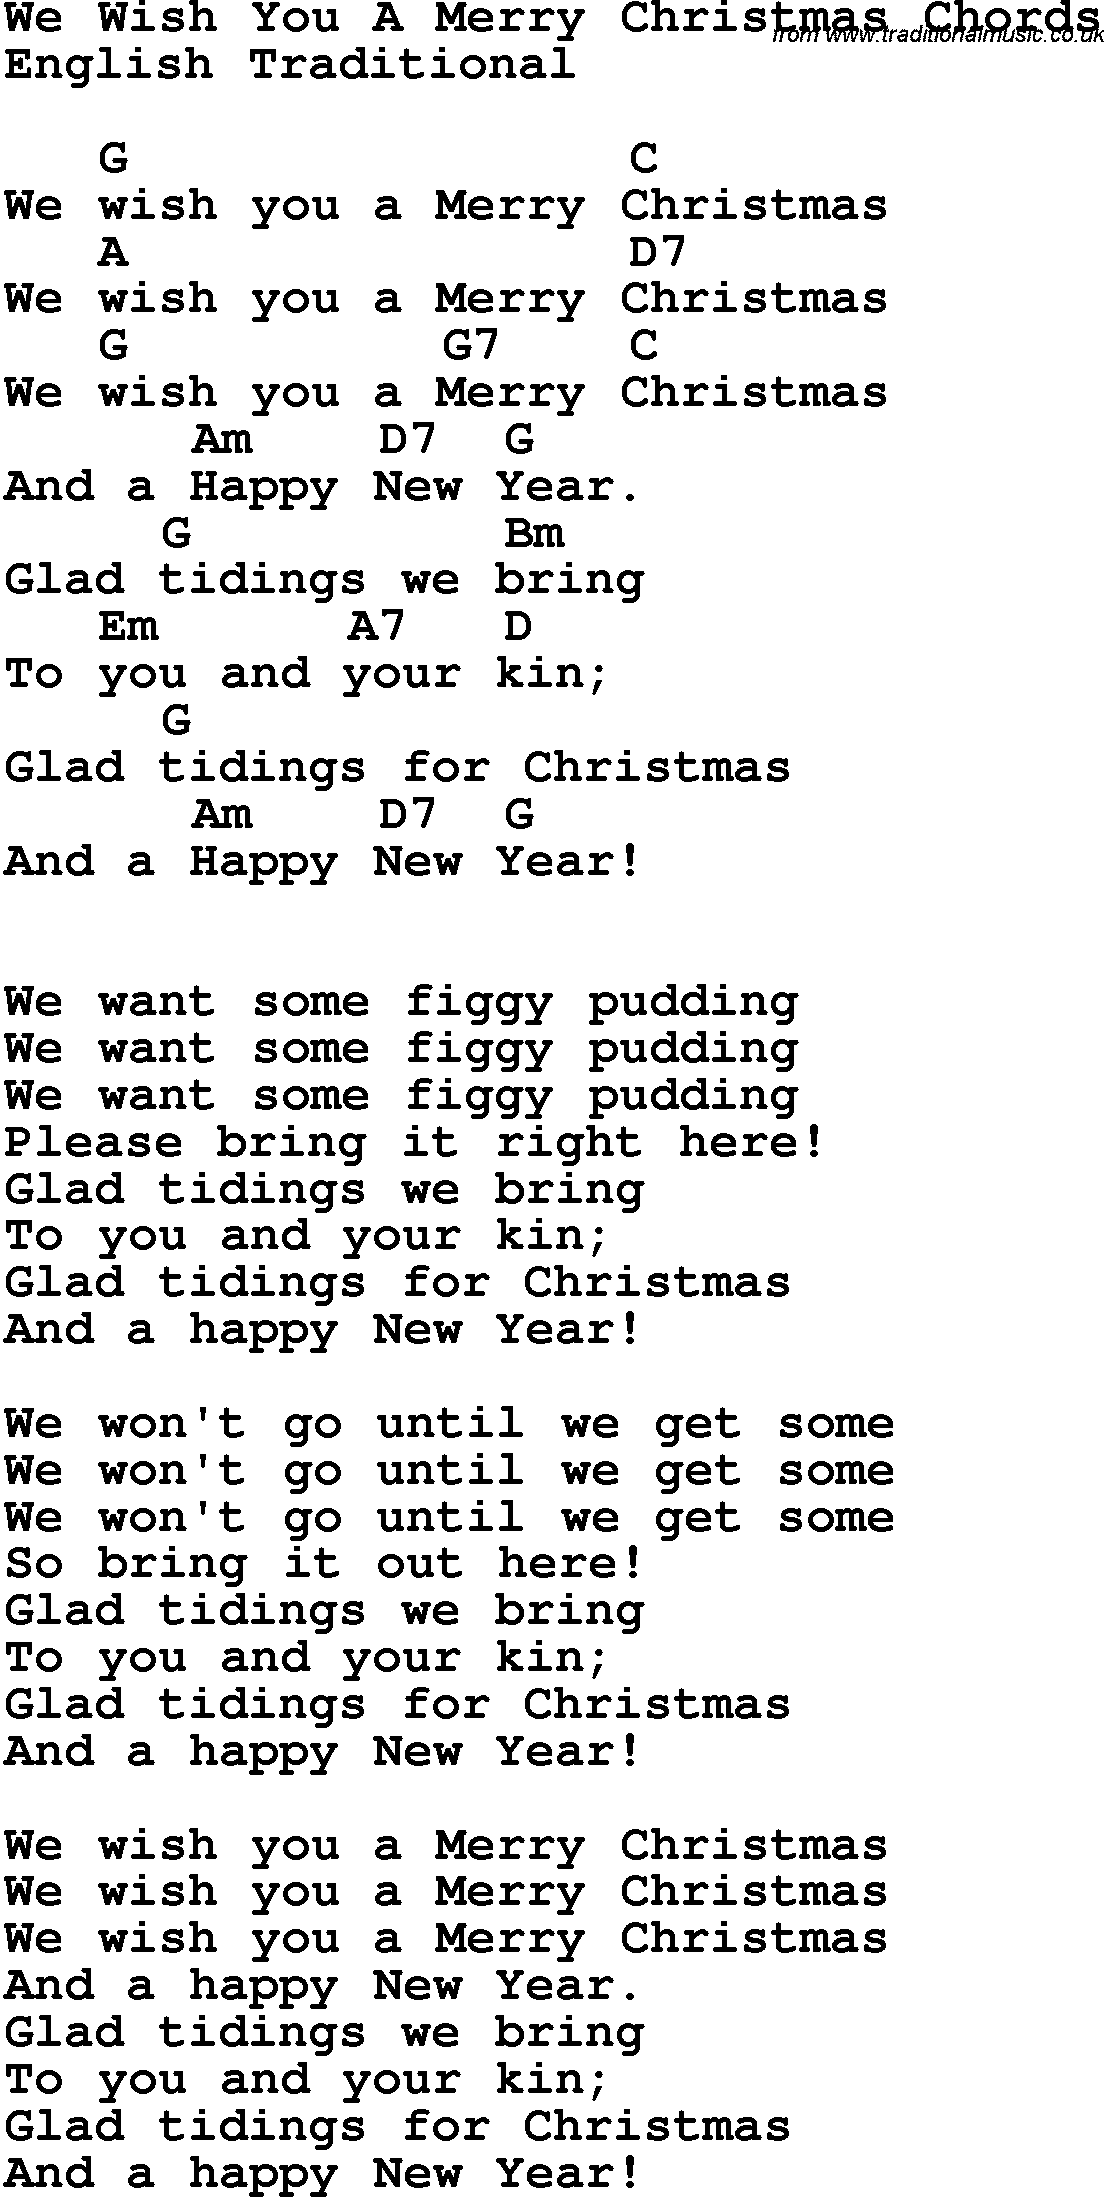 Song lyrics with guitar chords for We Wish You A Merry Christmas